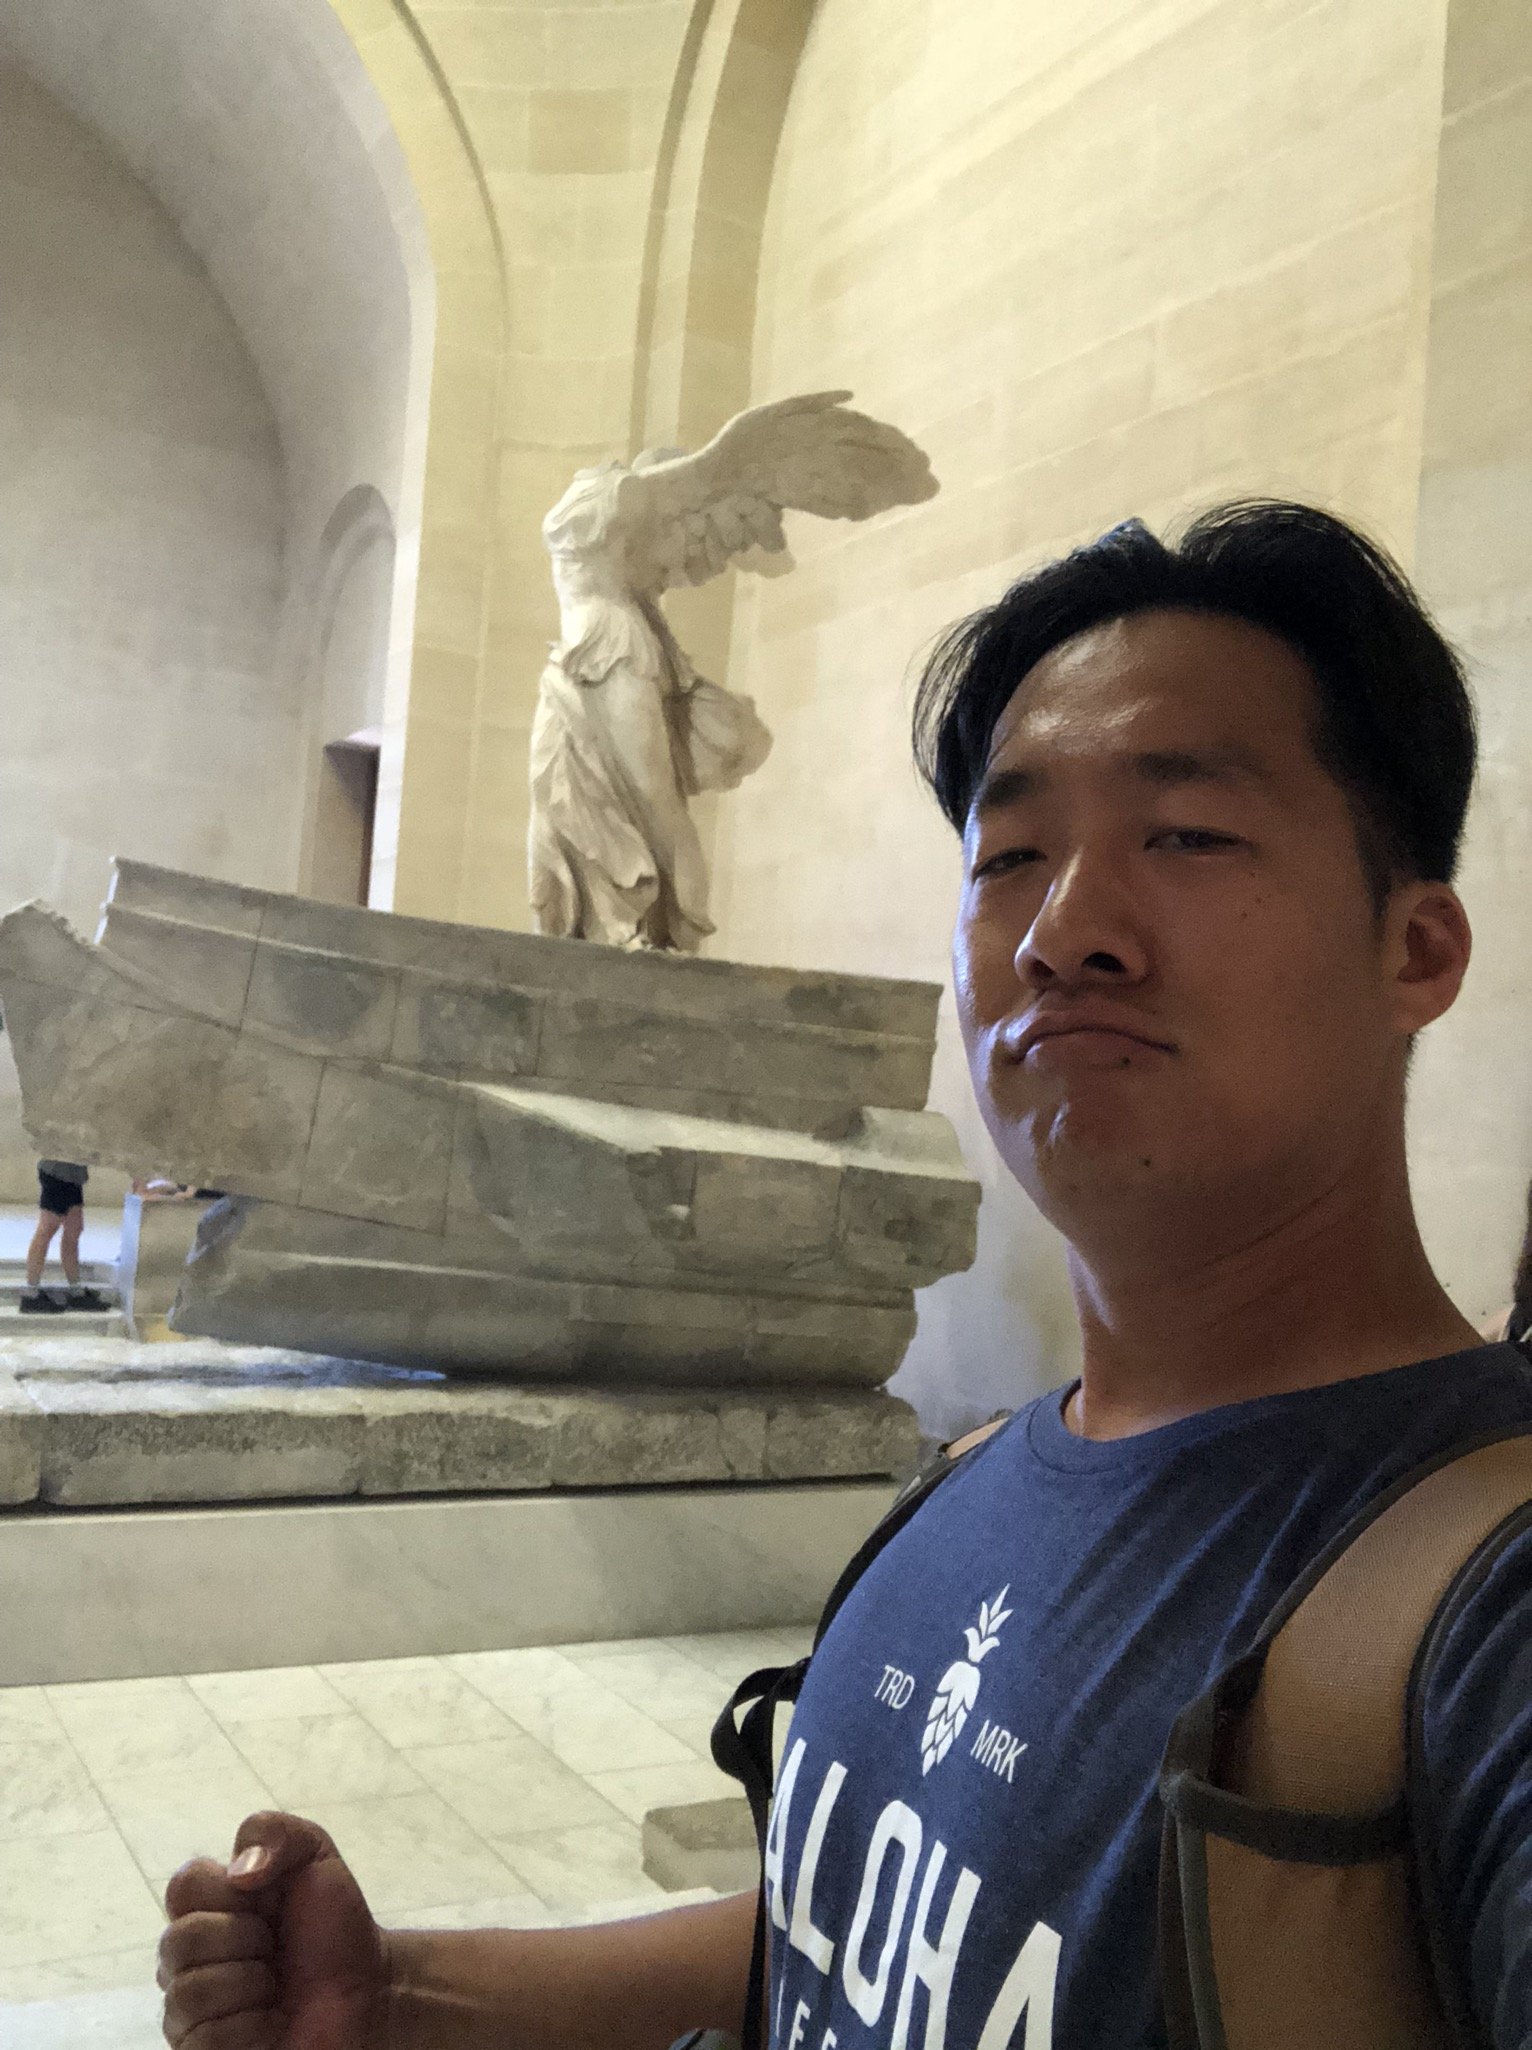 Winged Victory!